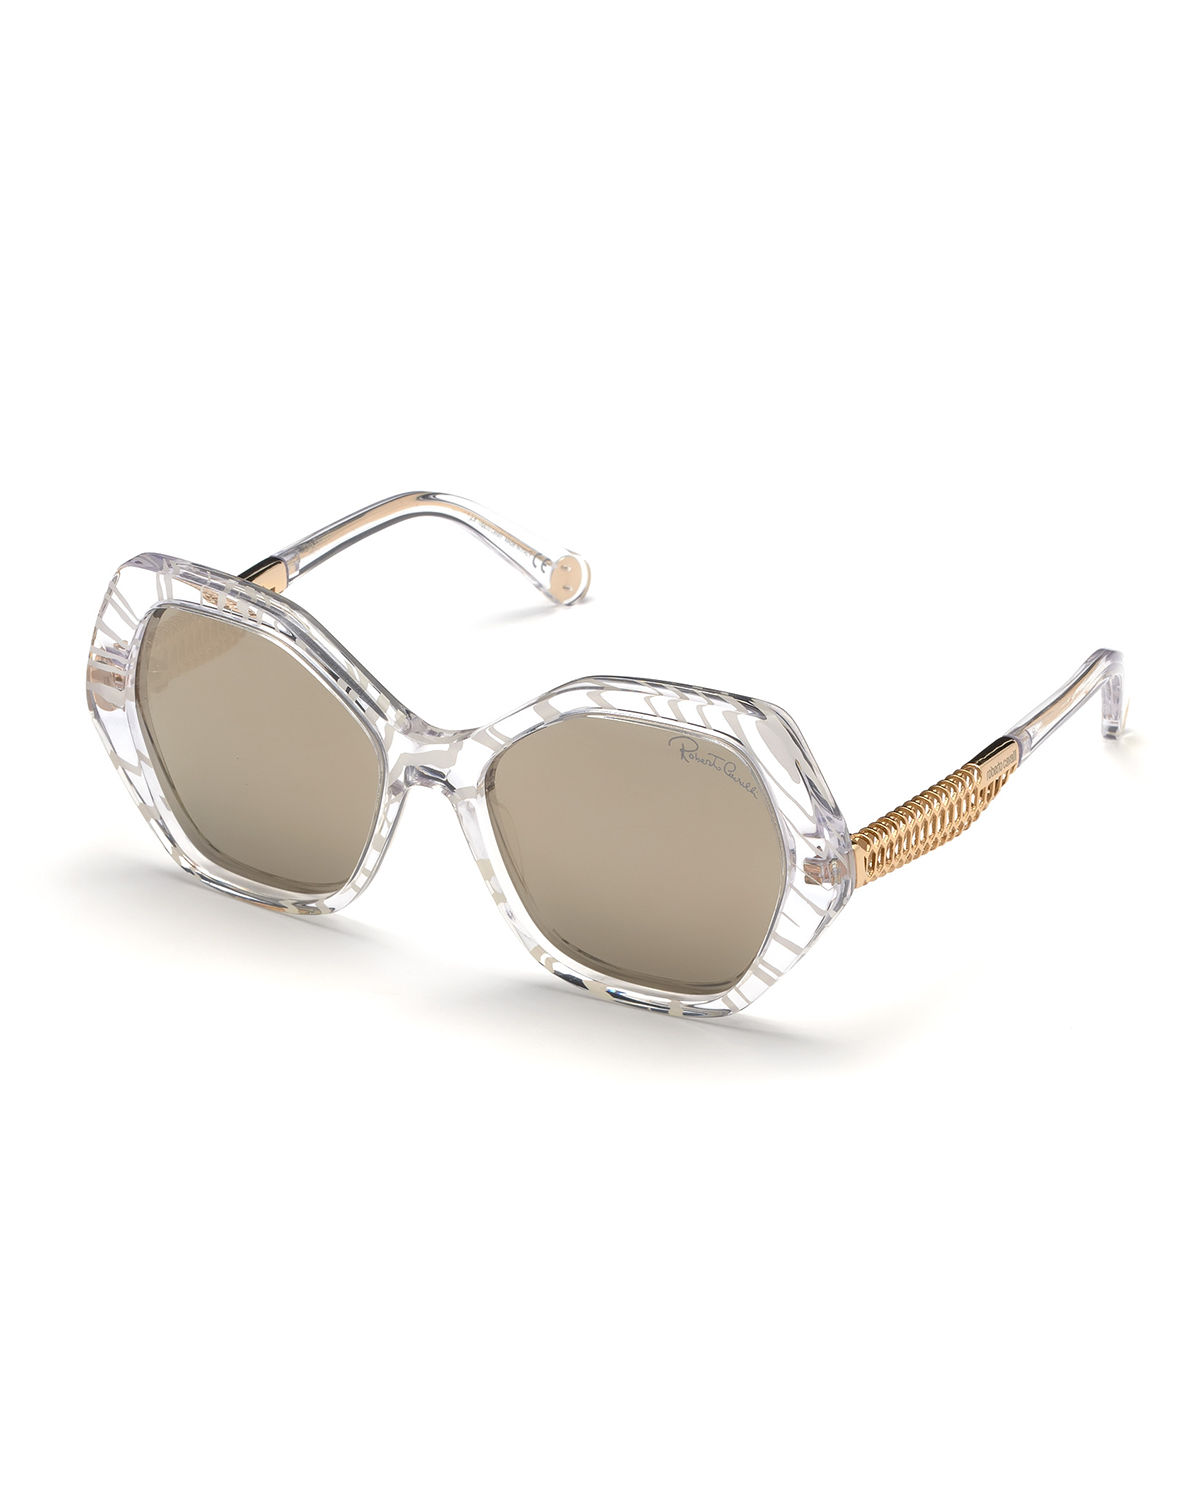 Roberto Cavalli Sunglasses ACETATE & METAL ROUND SUNGLASSES